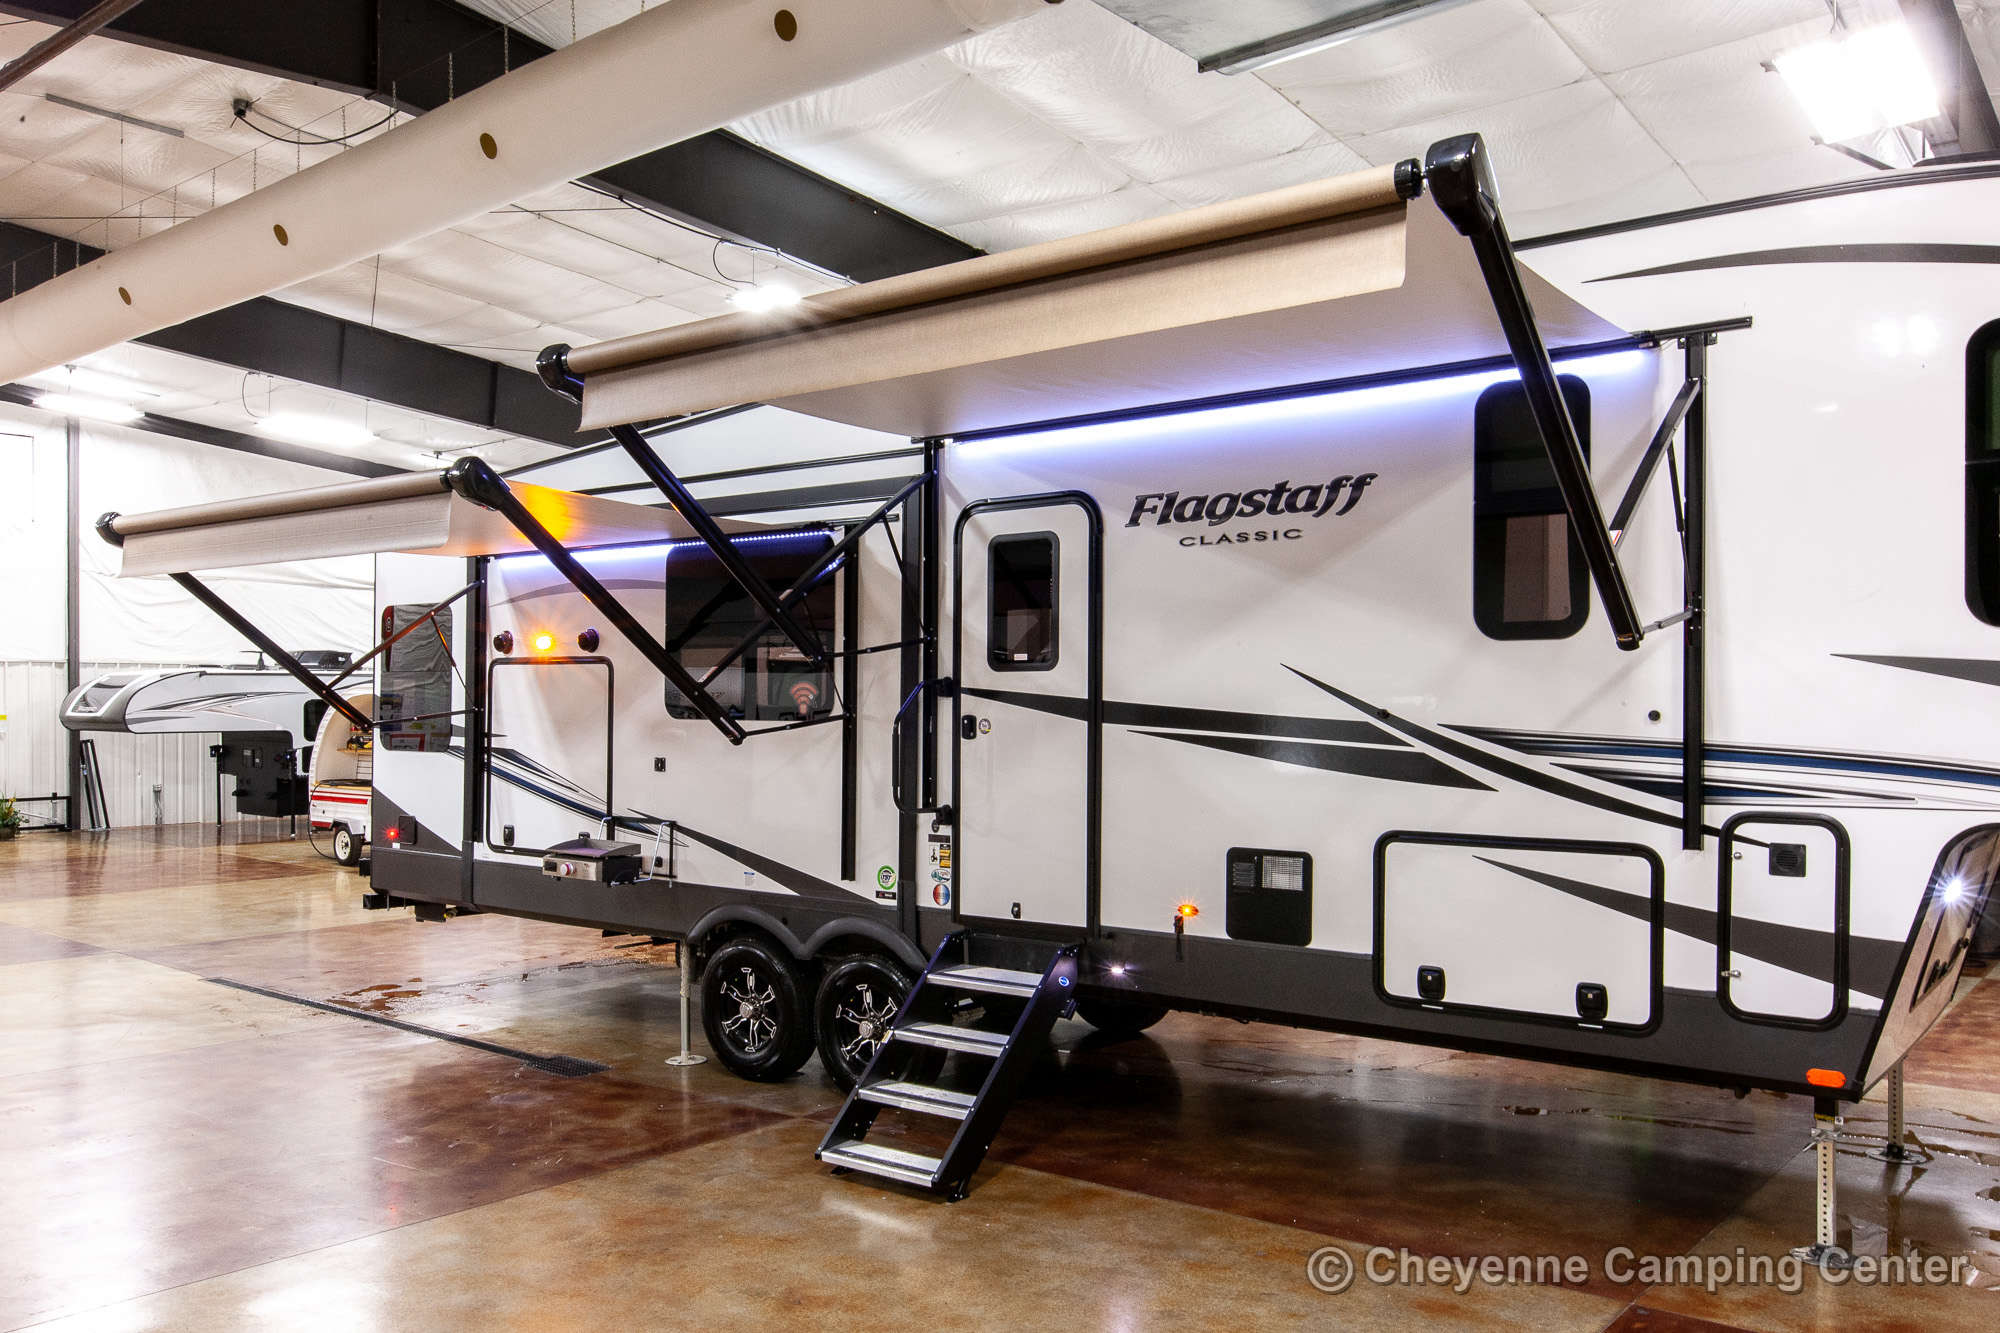 2021 Forest River Classic by Flagstaff 8529CSB Fifth Wheel Exterior Image